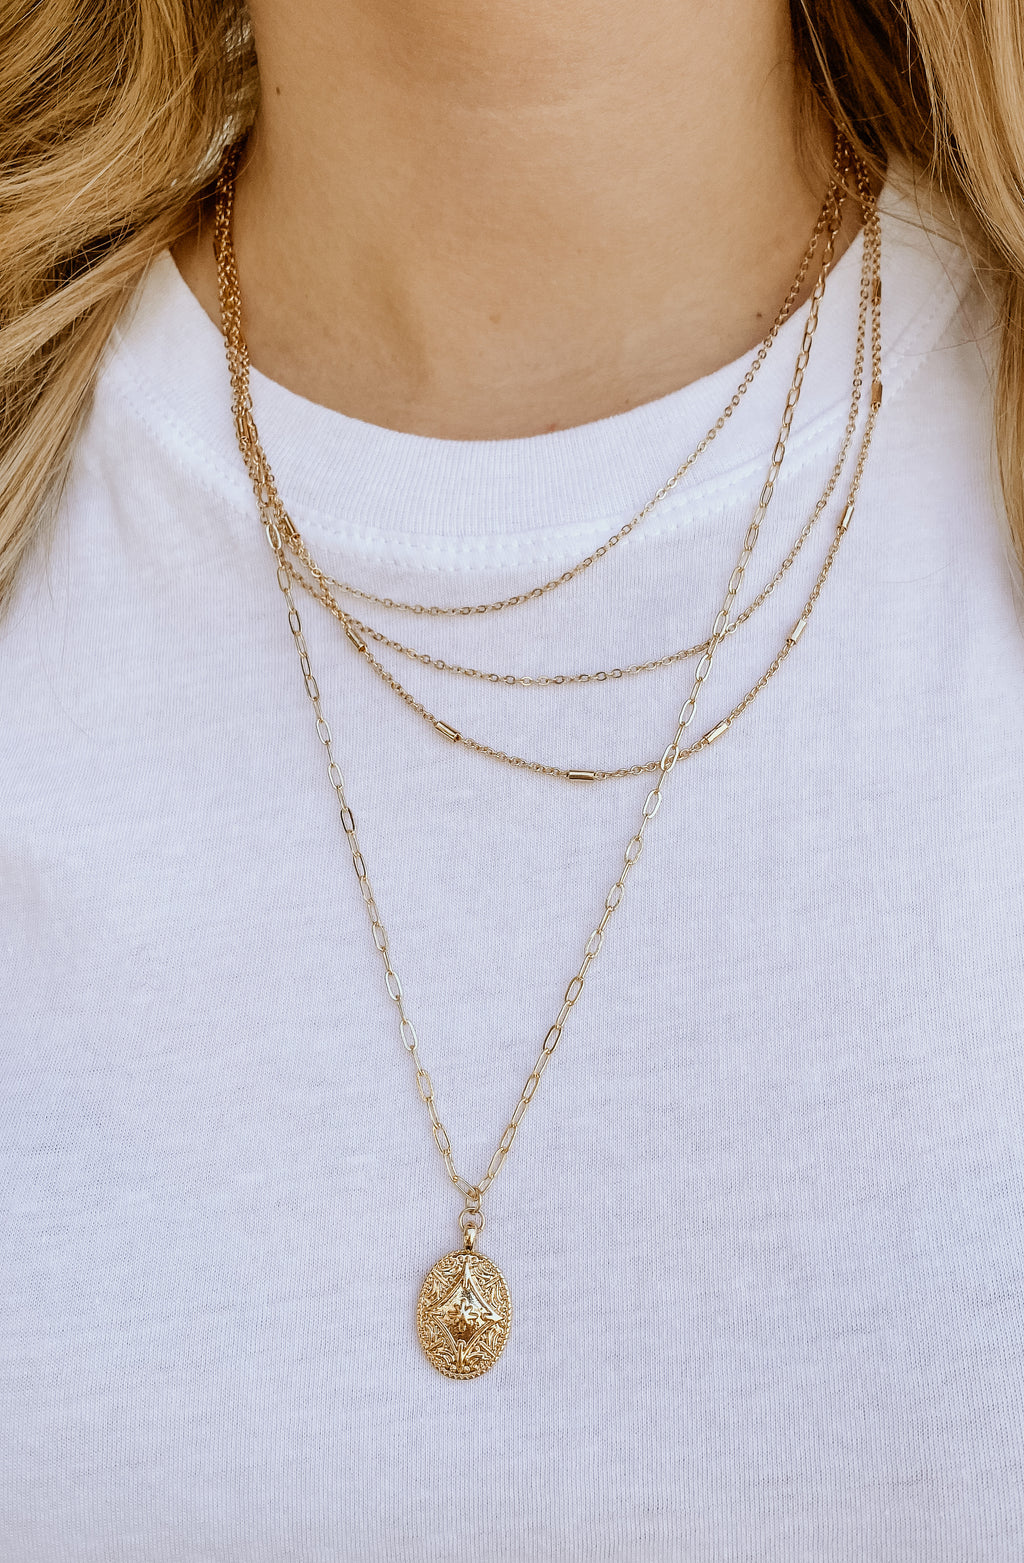 GLIMPSE OF GOLD NECKLACE